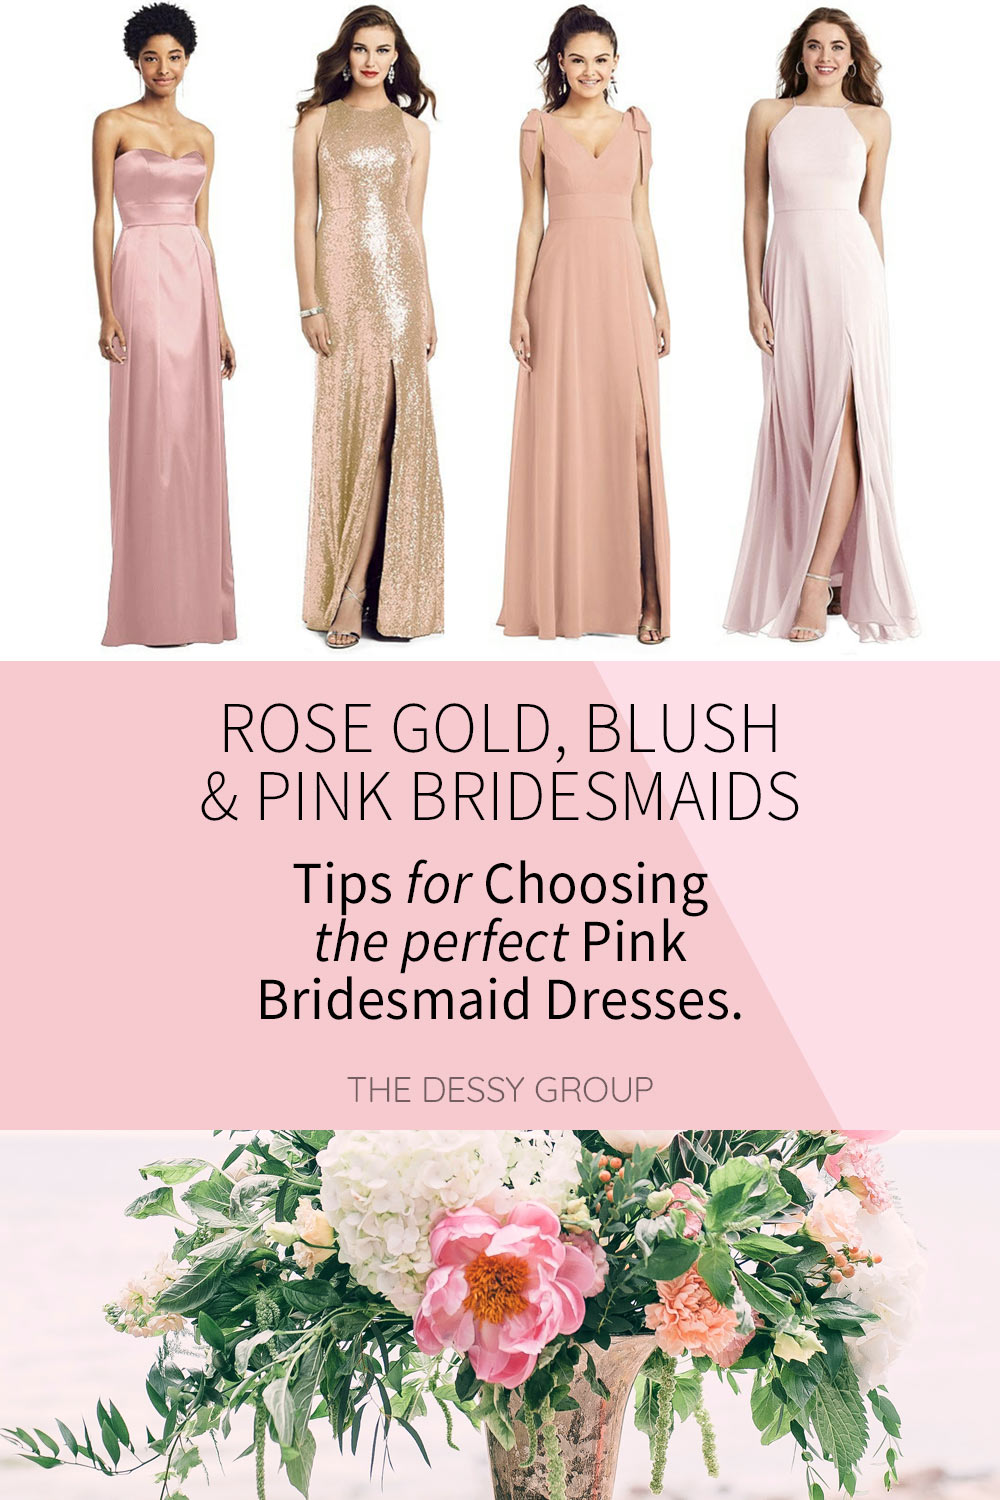 Rose Gold, Blush & Pink Bridesmaid Dresses: Can't decide on the perfect pink for your wedding? Check out these rose gold, pink and blush bridesmaid dresses from Dessy and find your perfect match!